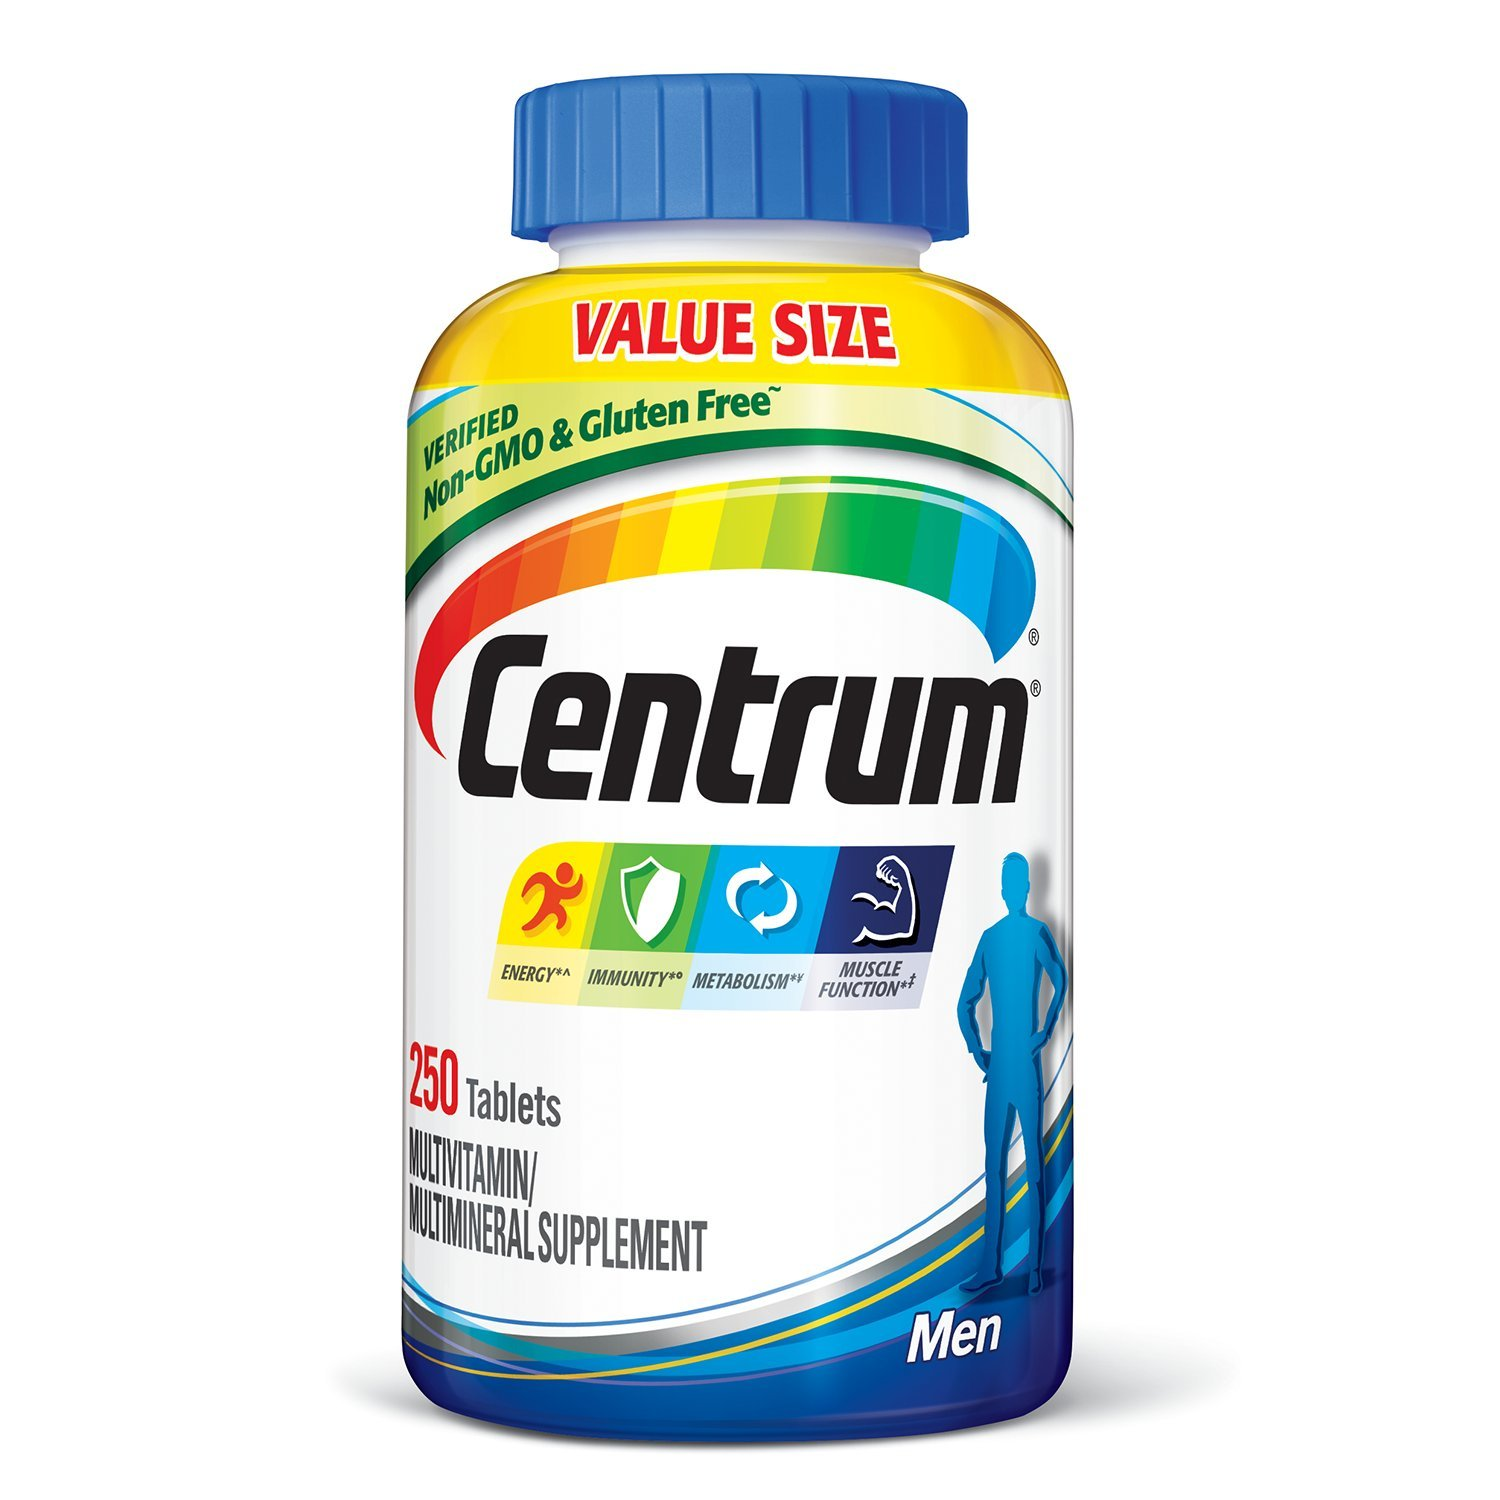 Amazon.com: Centrum Women (200 Count) Multivitamin / Multimineral Supplement Tablet, Vitamin D3